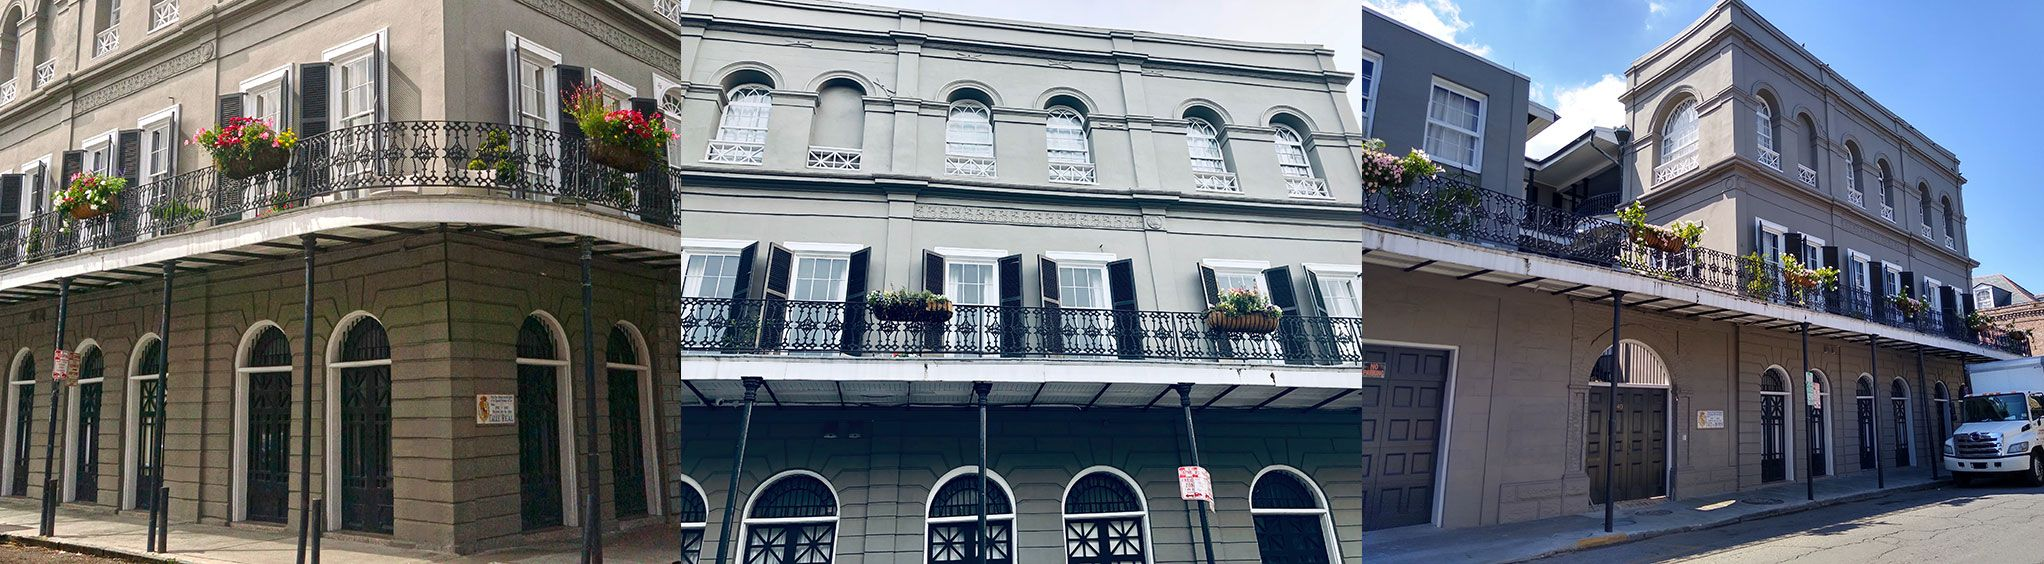 Lalaurie House in New Orleans, LA